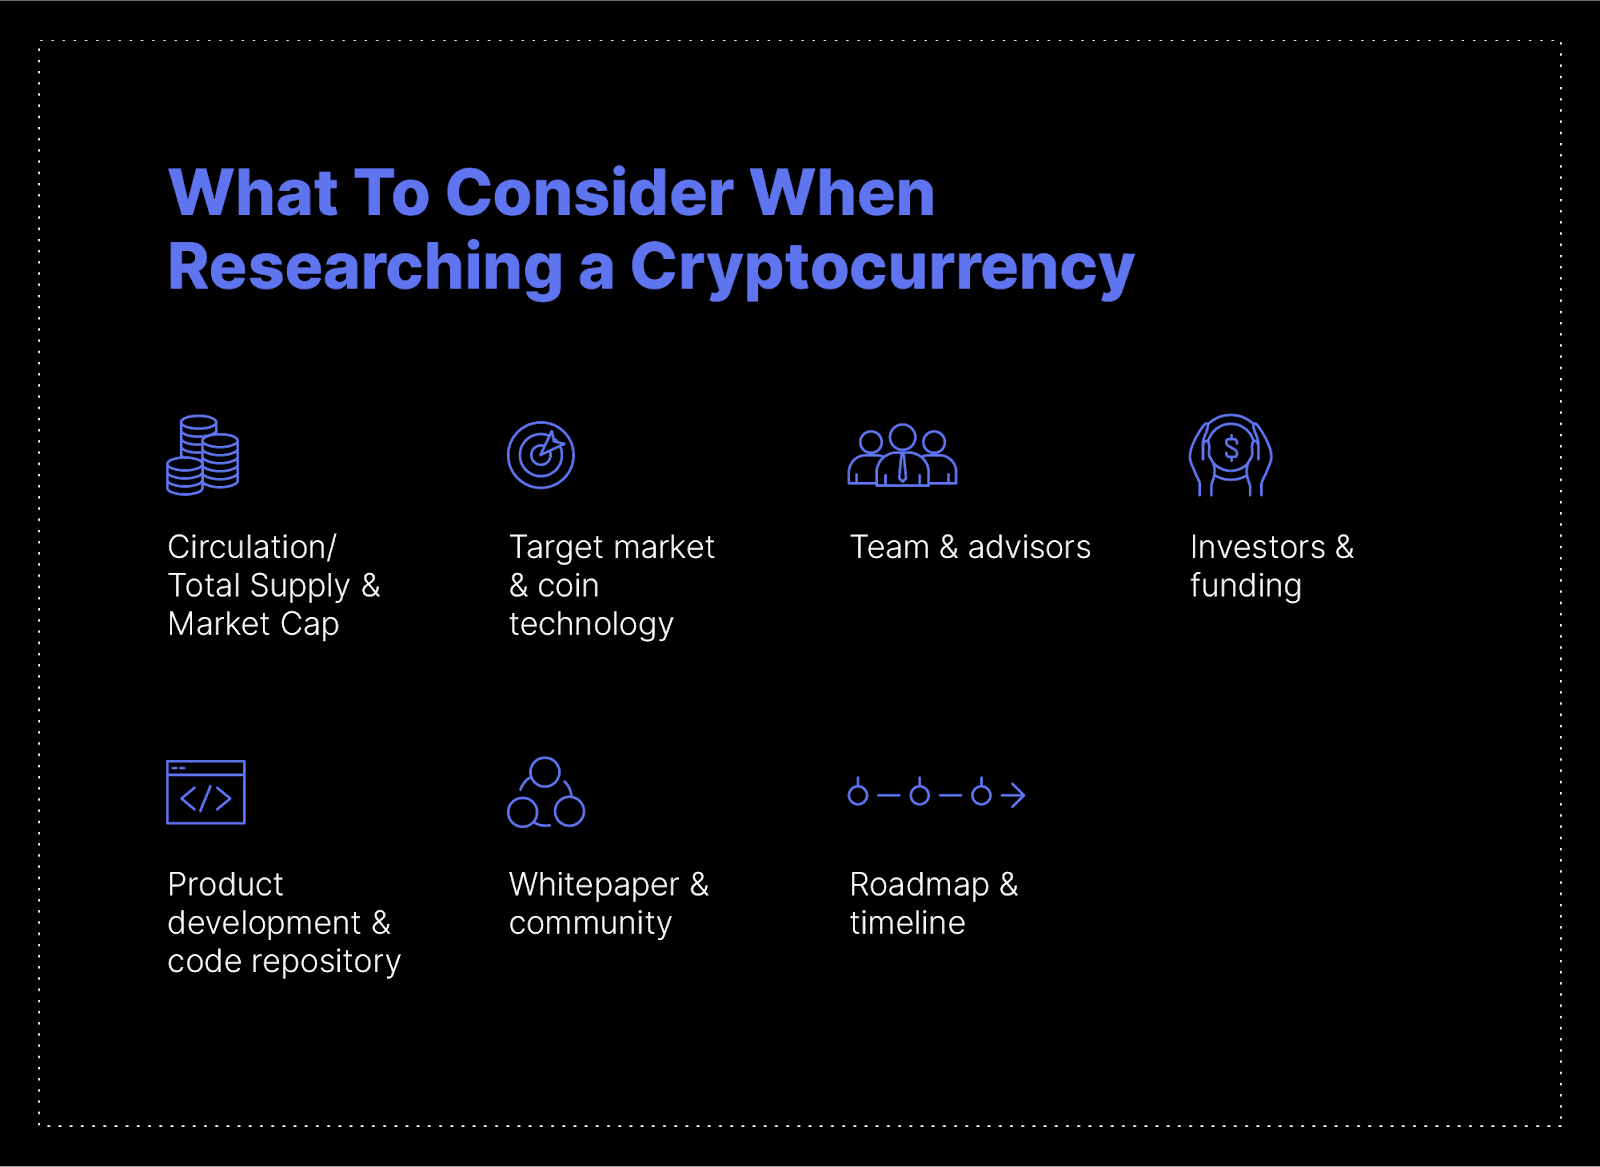 what to consider when researching cryptocurrency